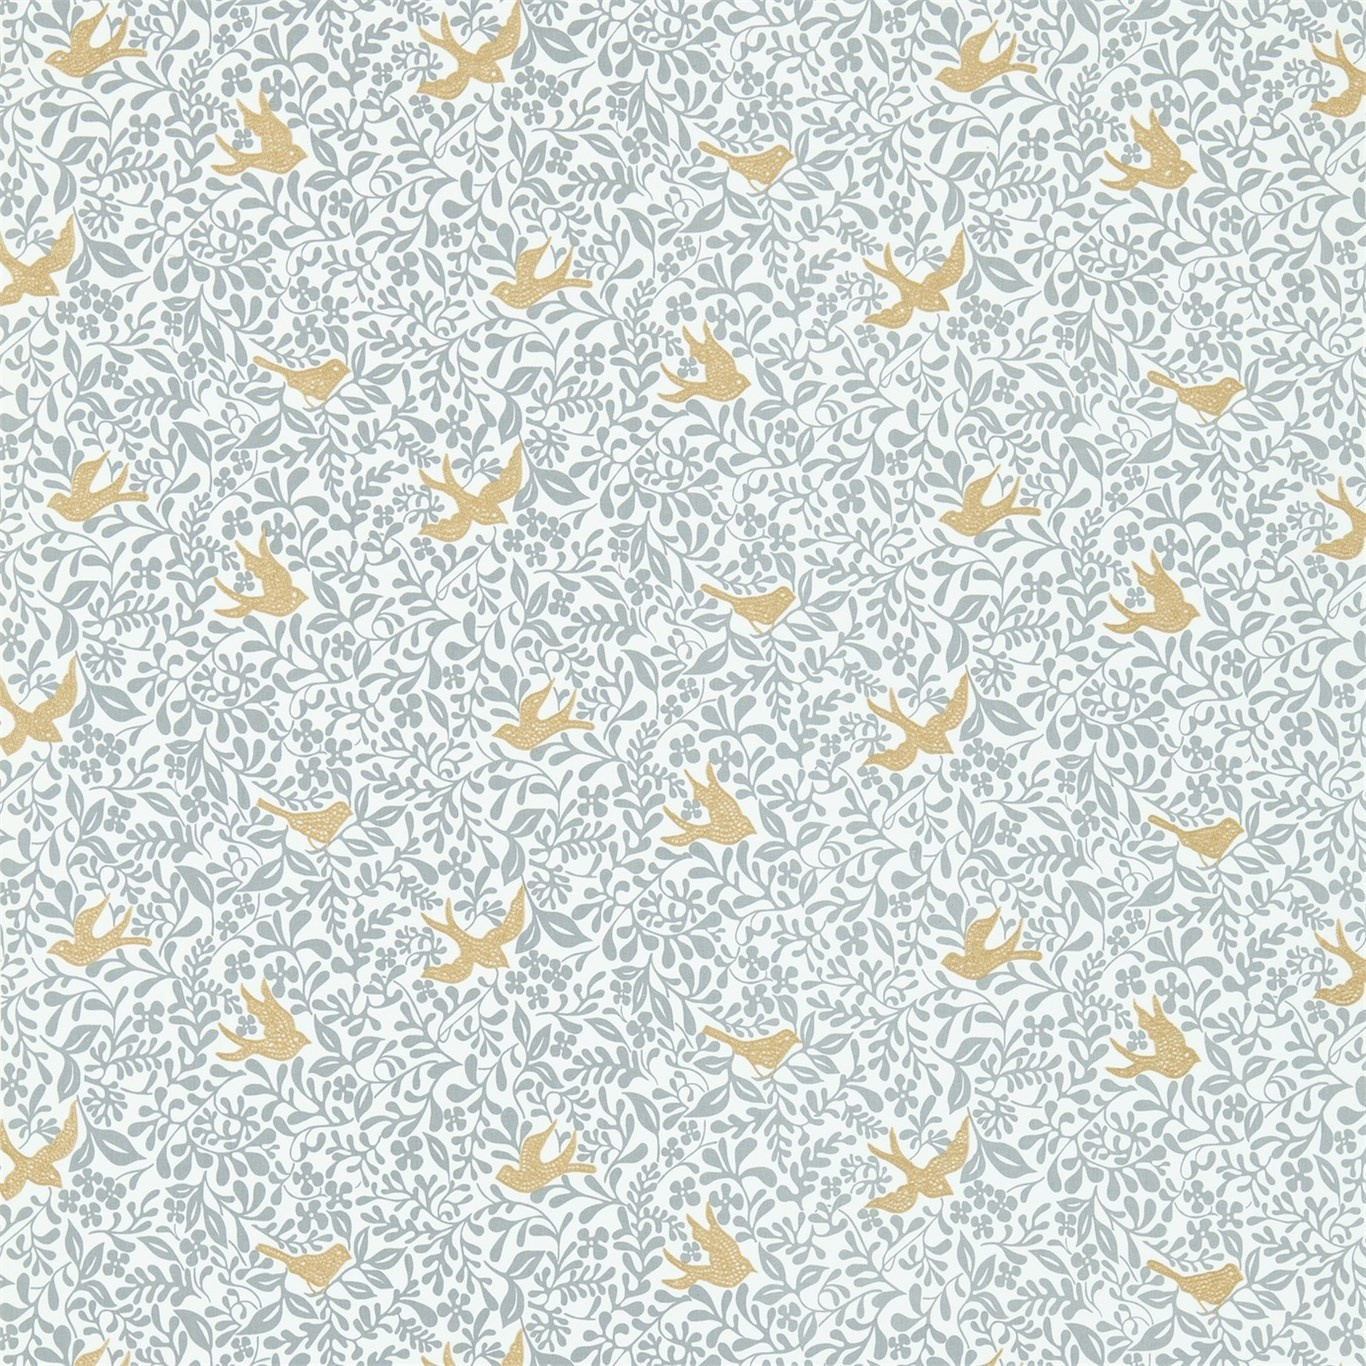 Image of Sanderson Larksong Dove/Honey Fabric 234652